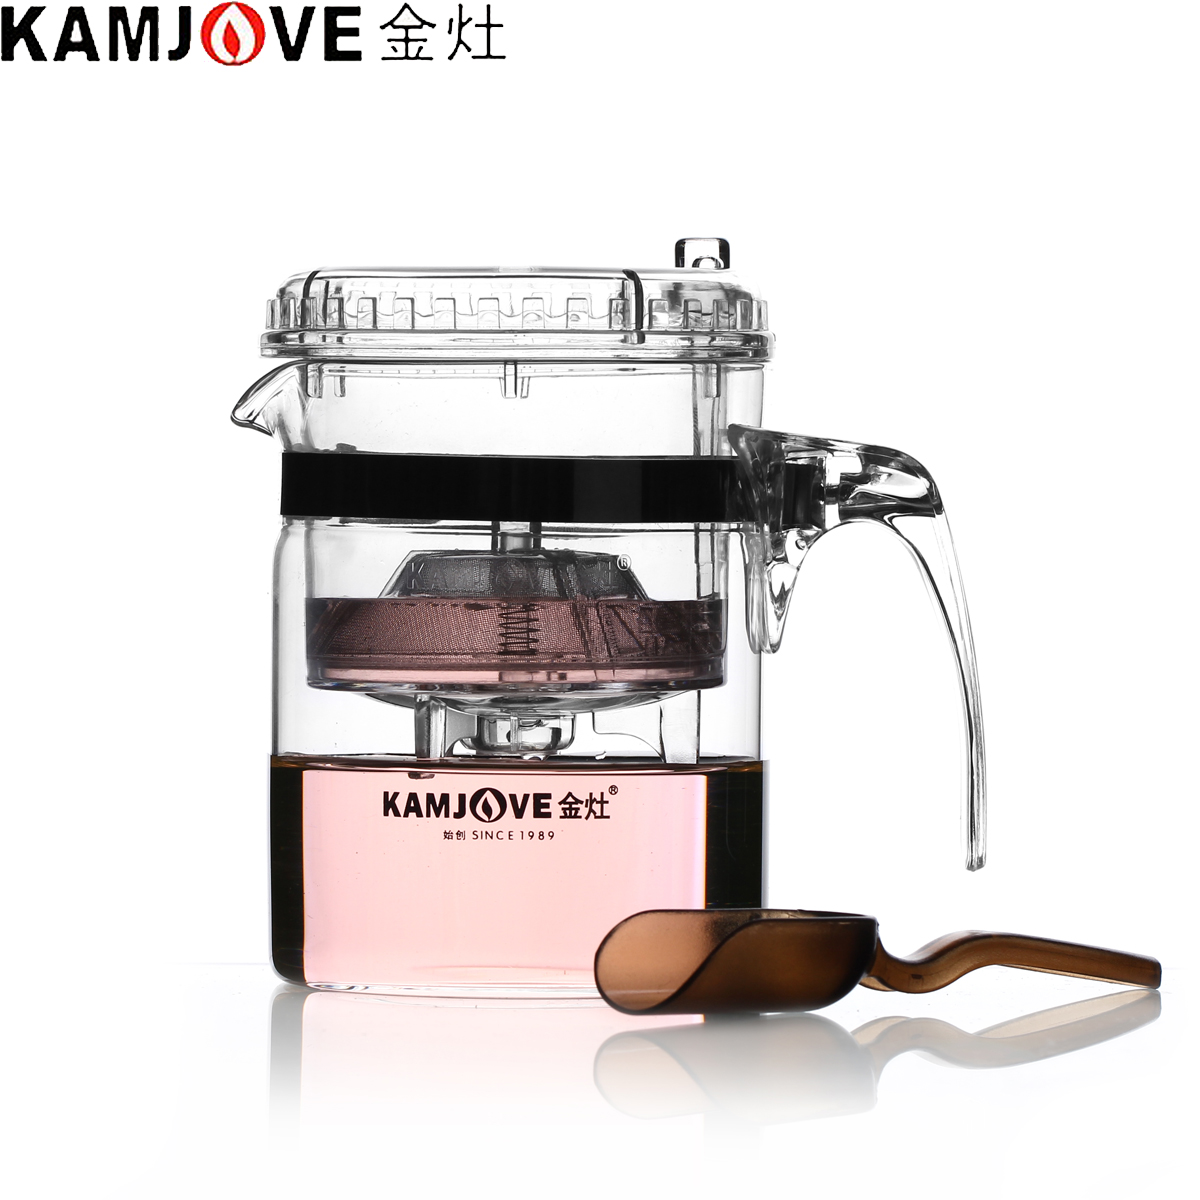 100% Genuine Kamjove TP-140 Art Tea Cup Teapot 300ml Glass Tea Kettle Strainer Elegant Cup AUTO-OPEN Tea Set Infuser De Cha